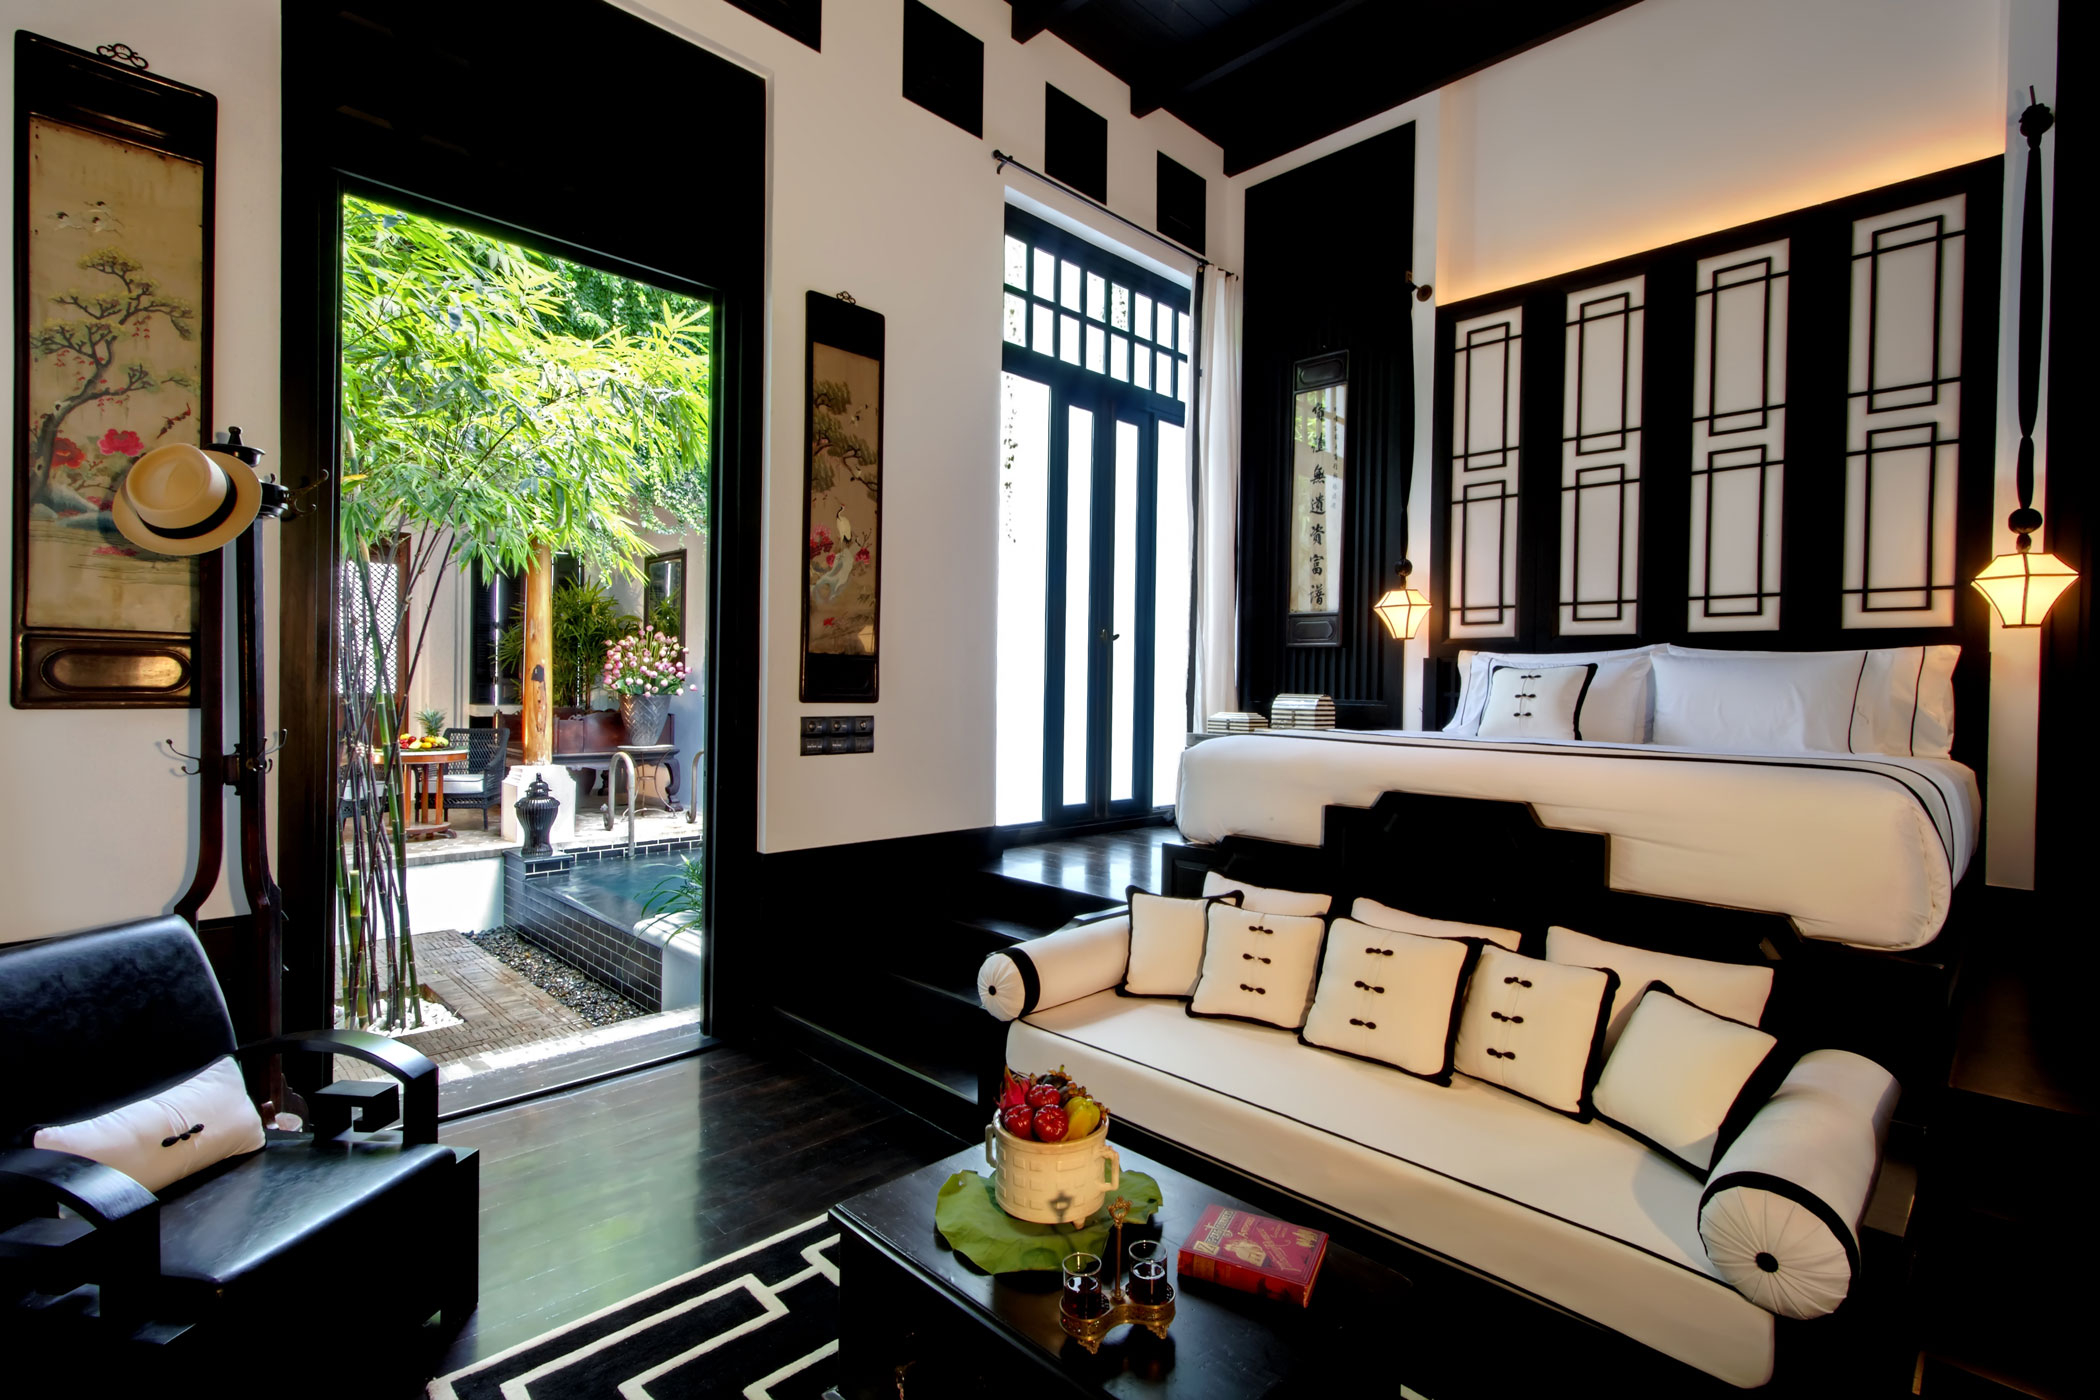 chinese living room small decor pics furniture ideas on foter 9